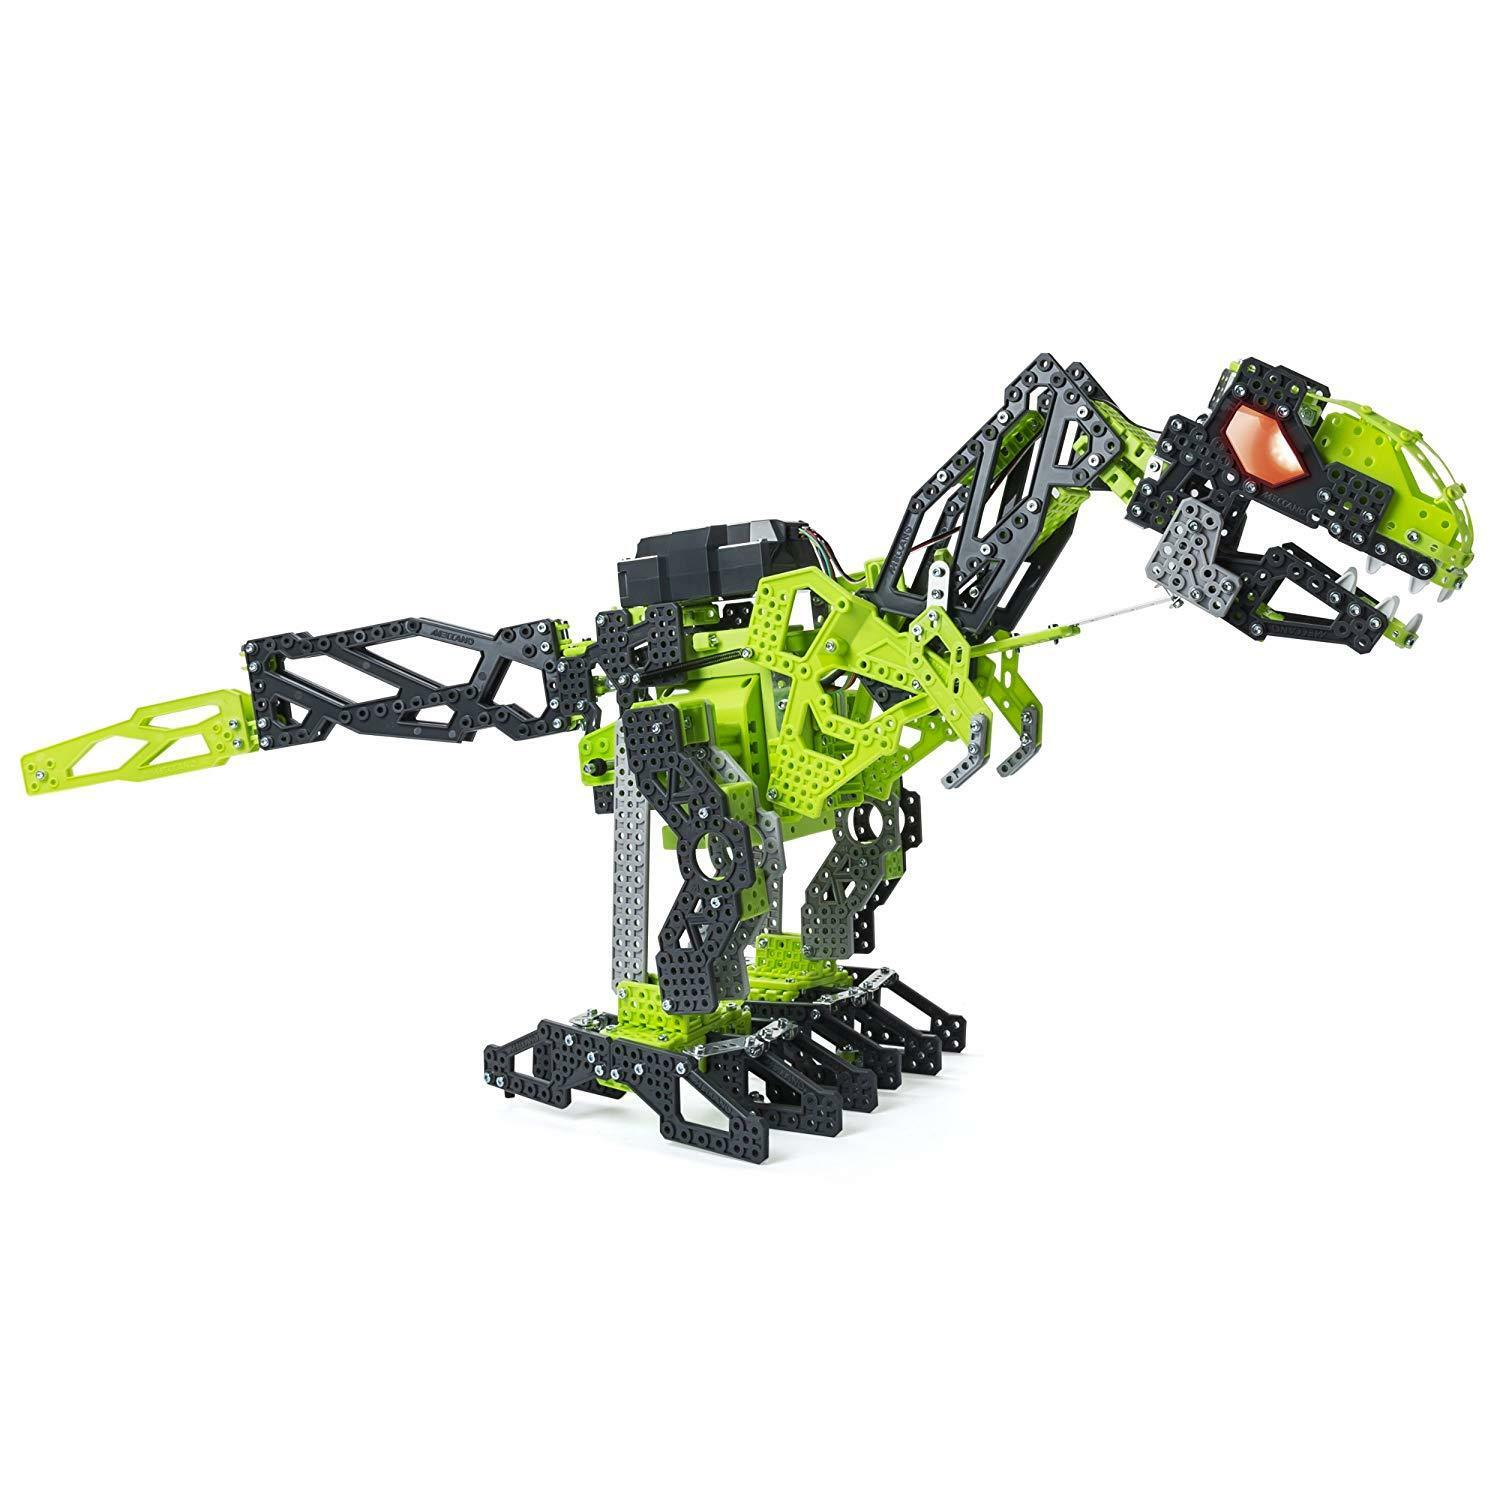 Home Kids Room Toy Toy Toy Game Play Tool Meccano Meccasaur Hobbies Rex robot Sound Fits 7394d7